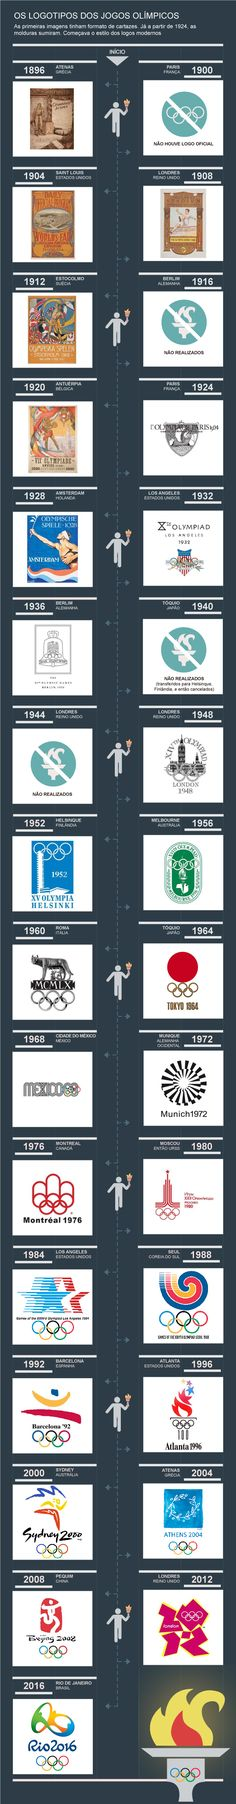 olympic games (logotypes) - in Portuguese